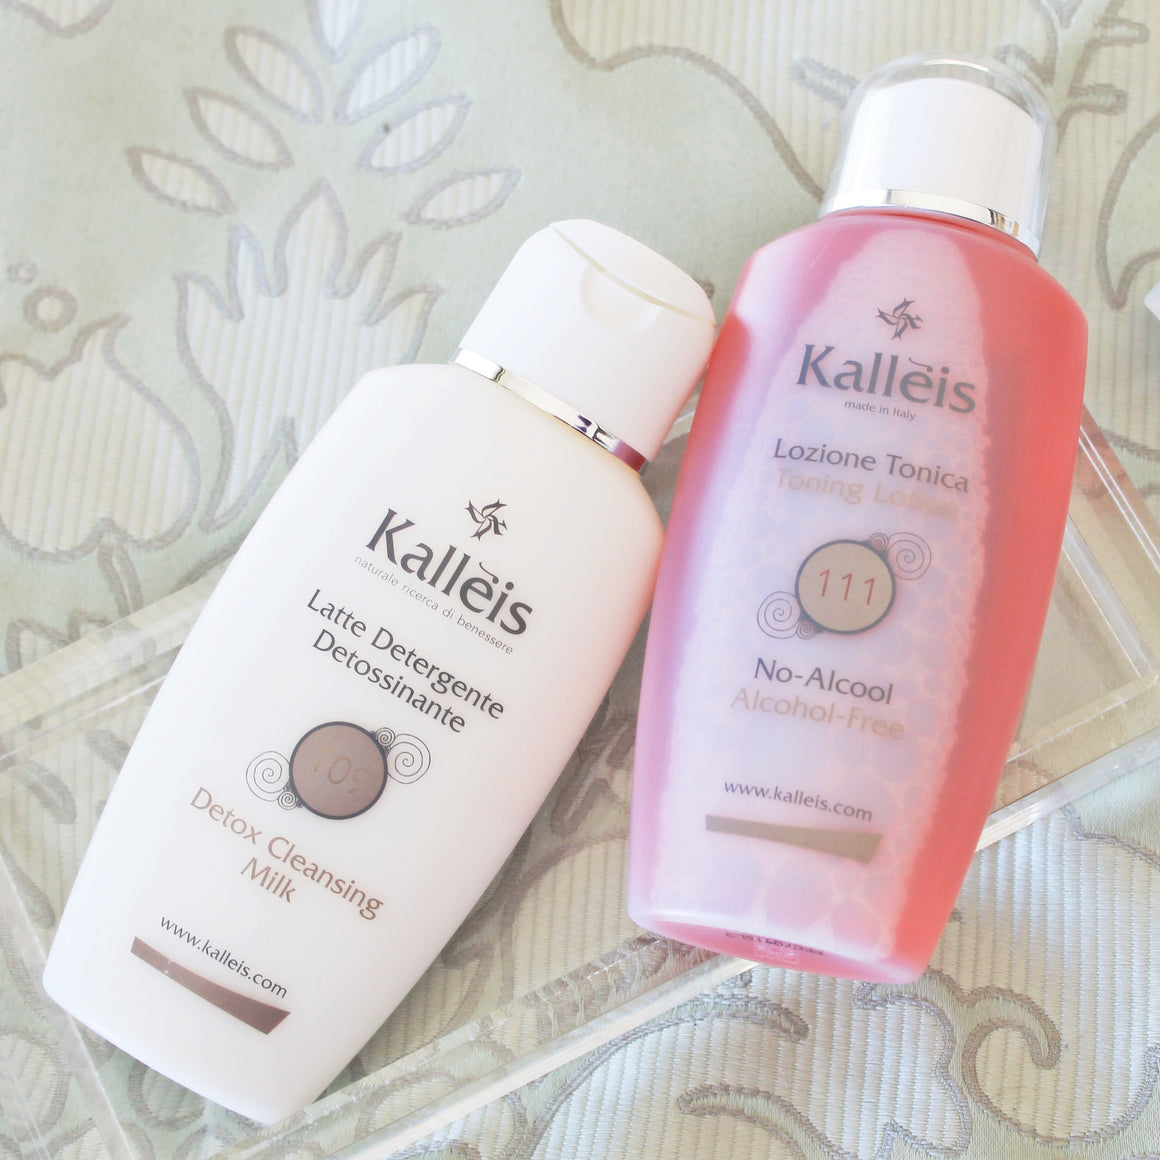 Kallèis Cleansing Routine Duo